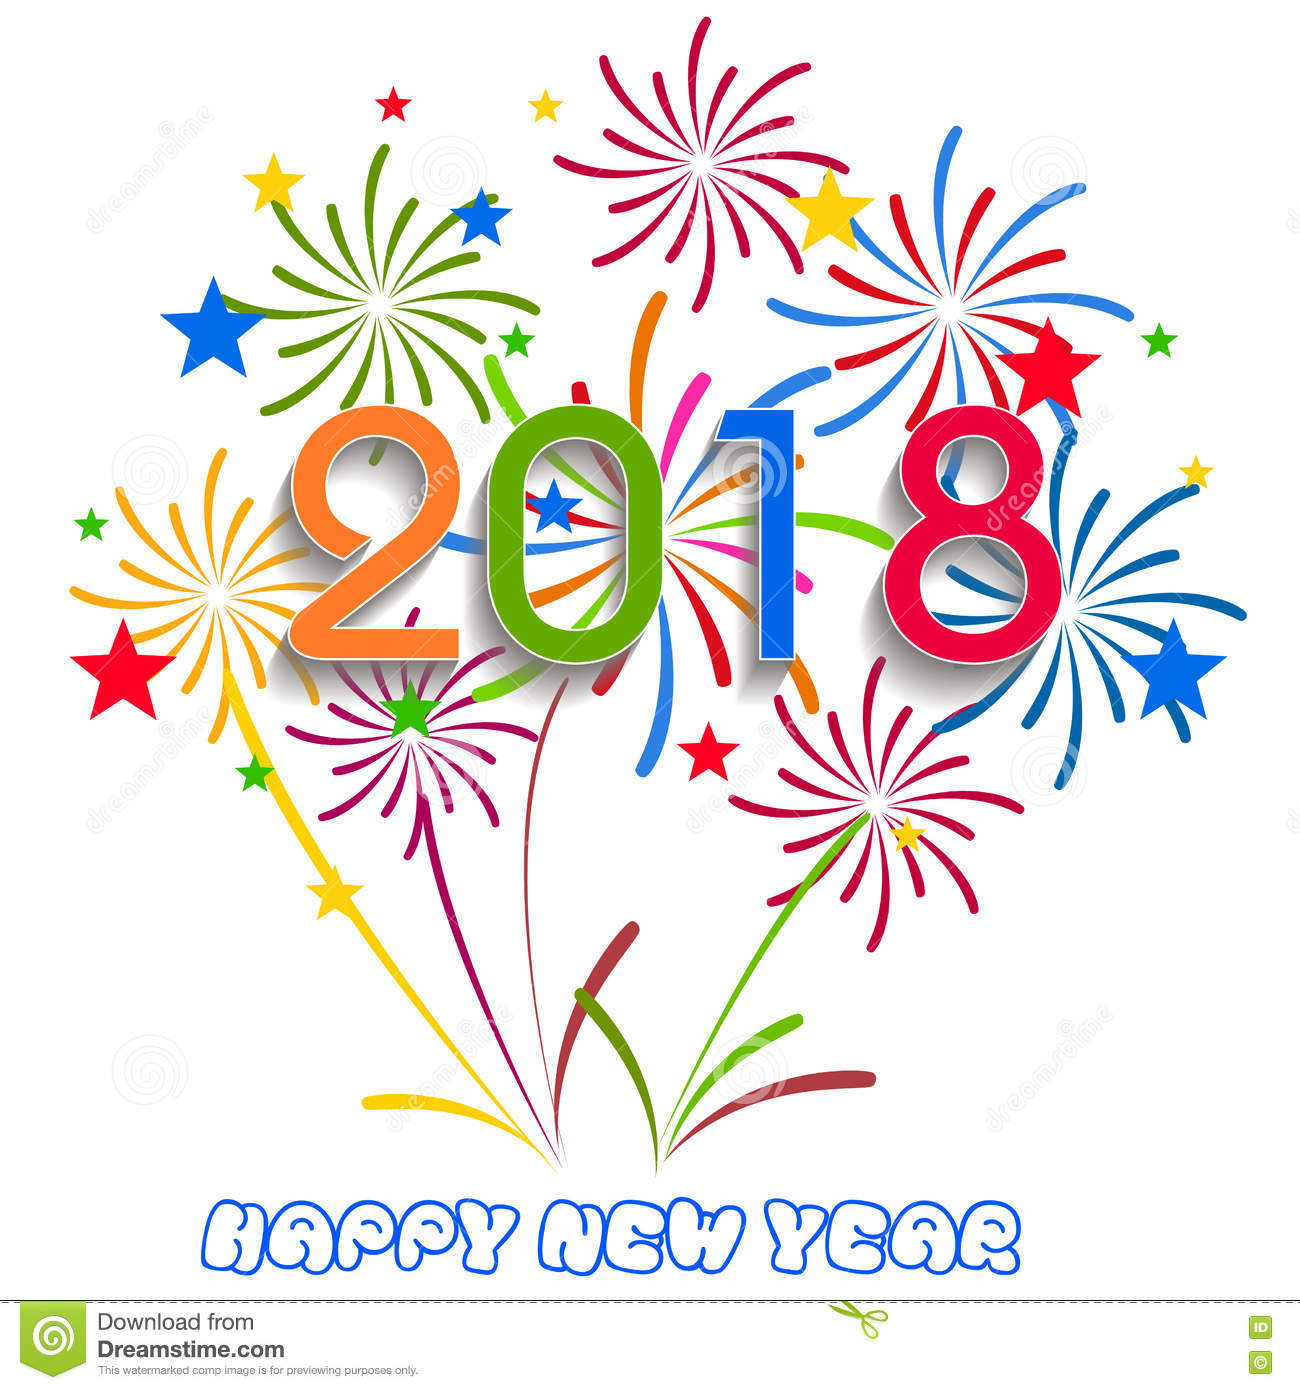 Year new Happy fireworks clipart pictures advise dress for autumn in 2019